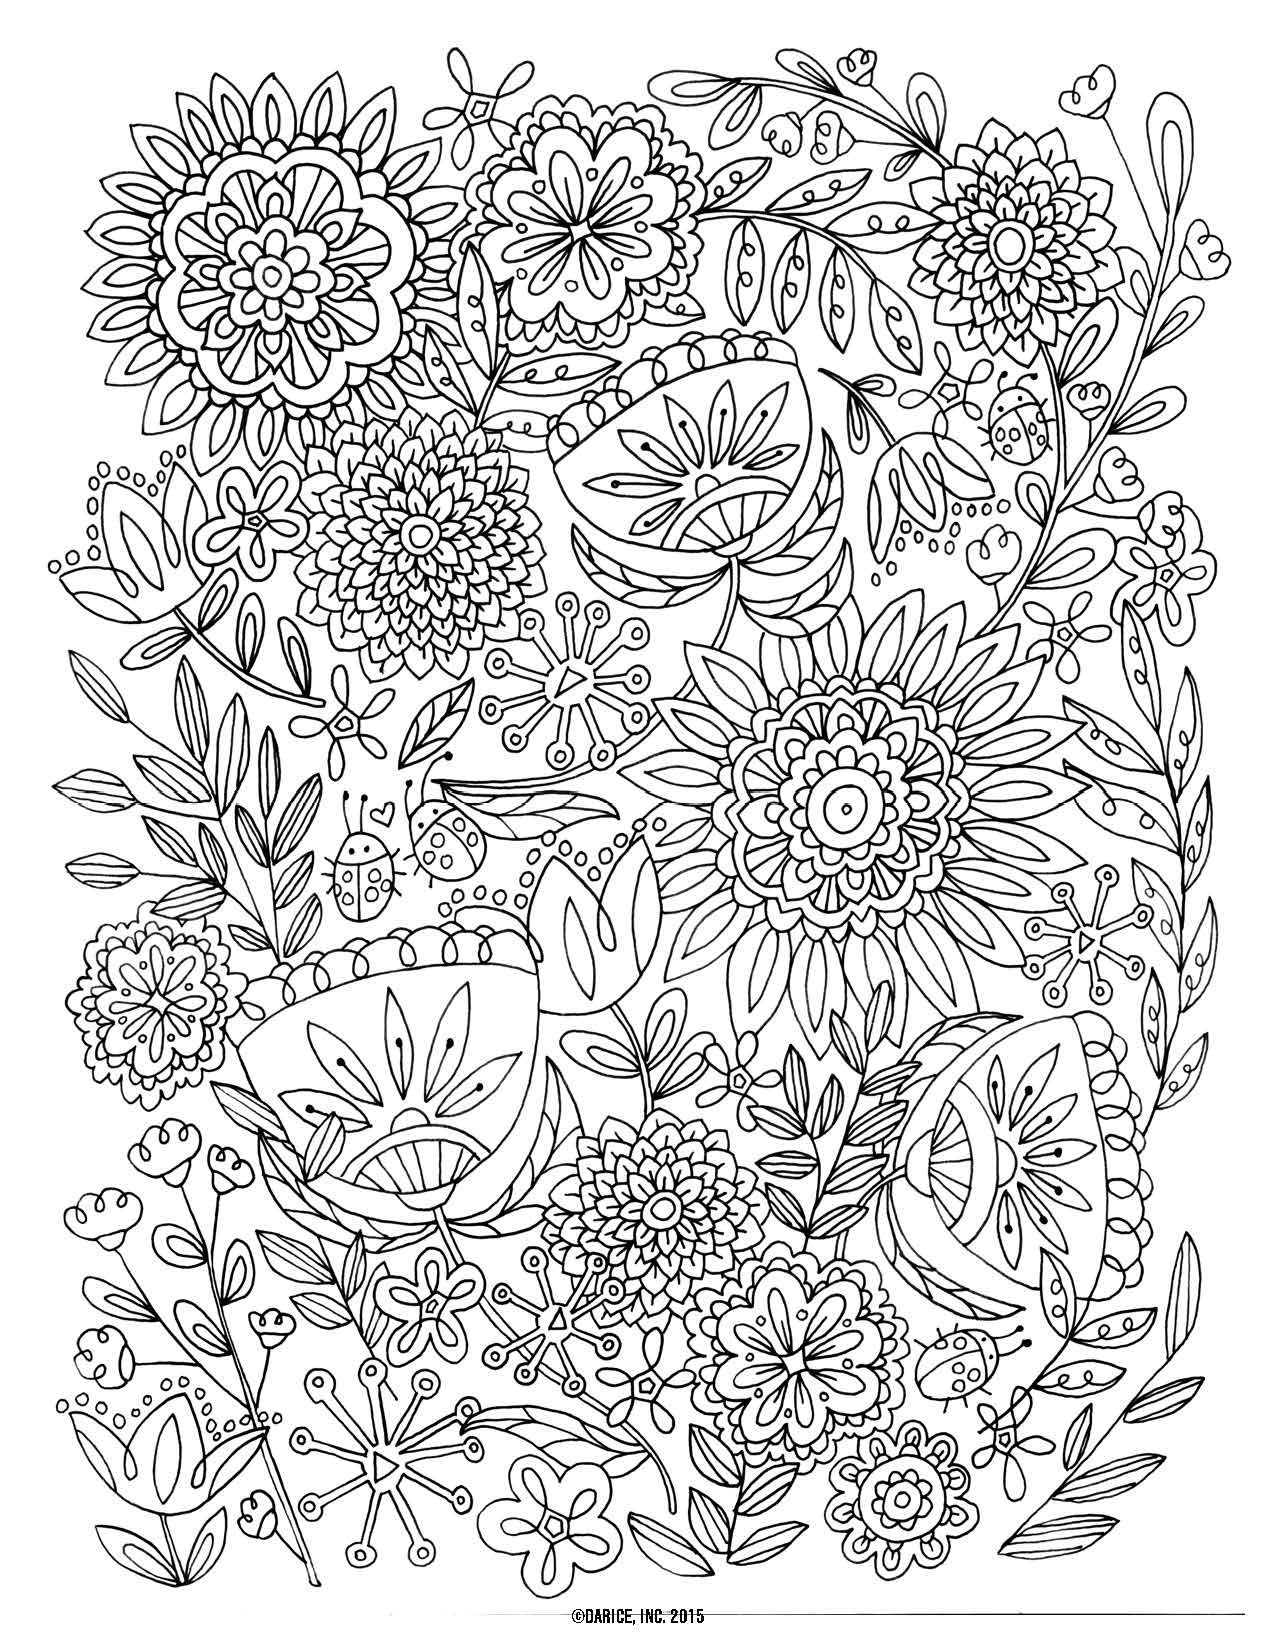 Online Coloring Pages For Adults Elegant Online Coloring ...